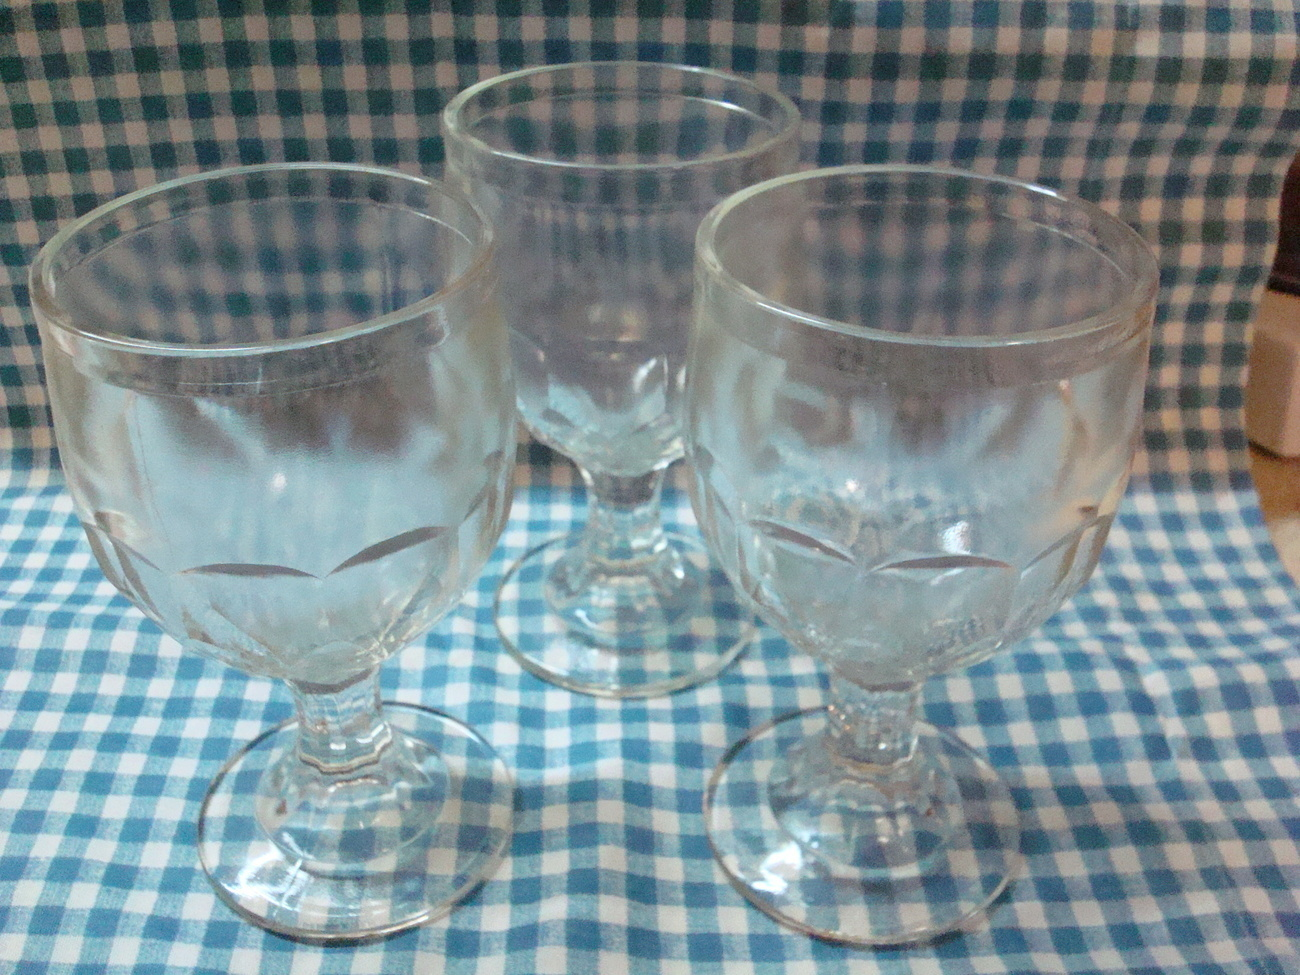 3 Vintage Heavy Glass Peanut Butter Goblets Footed Glasses Water Beer Root Beer